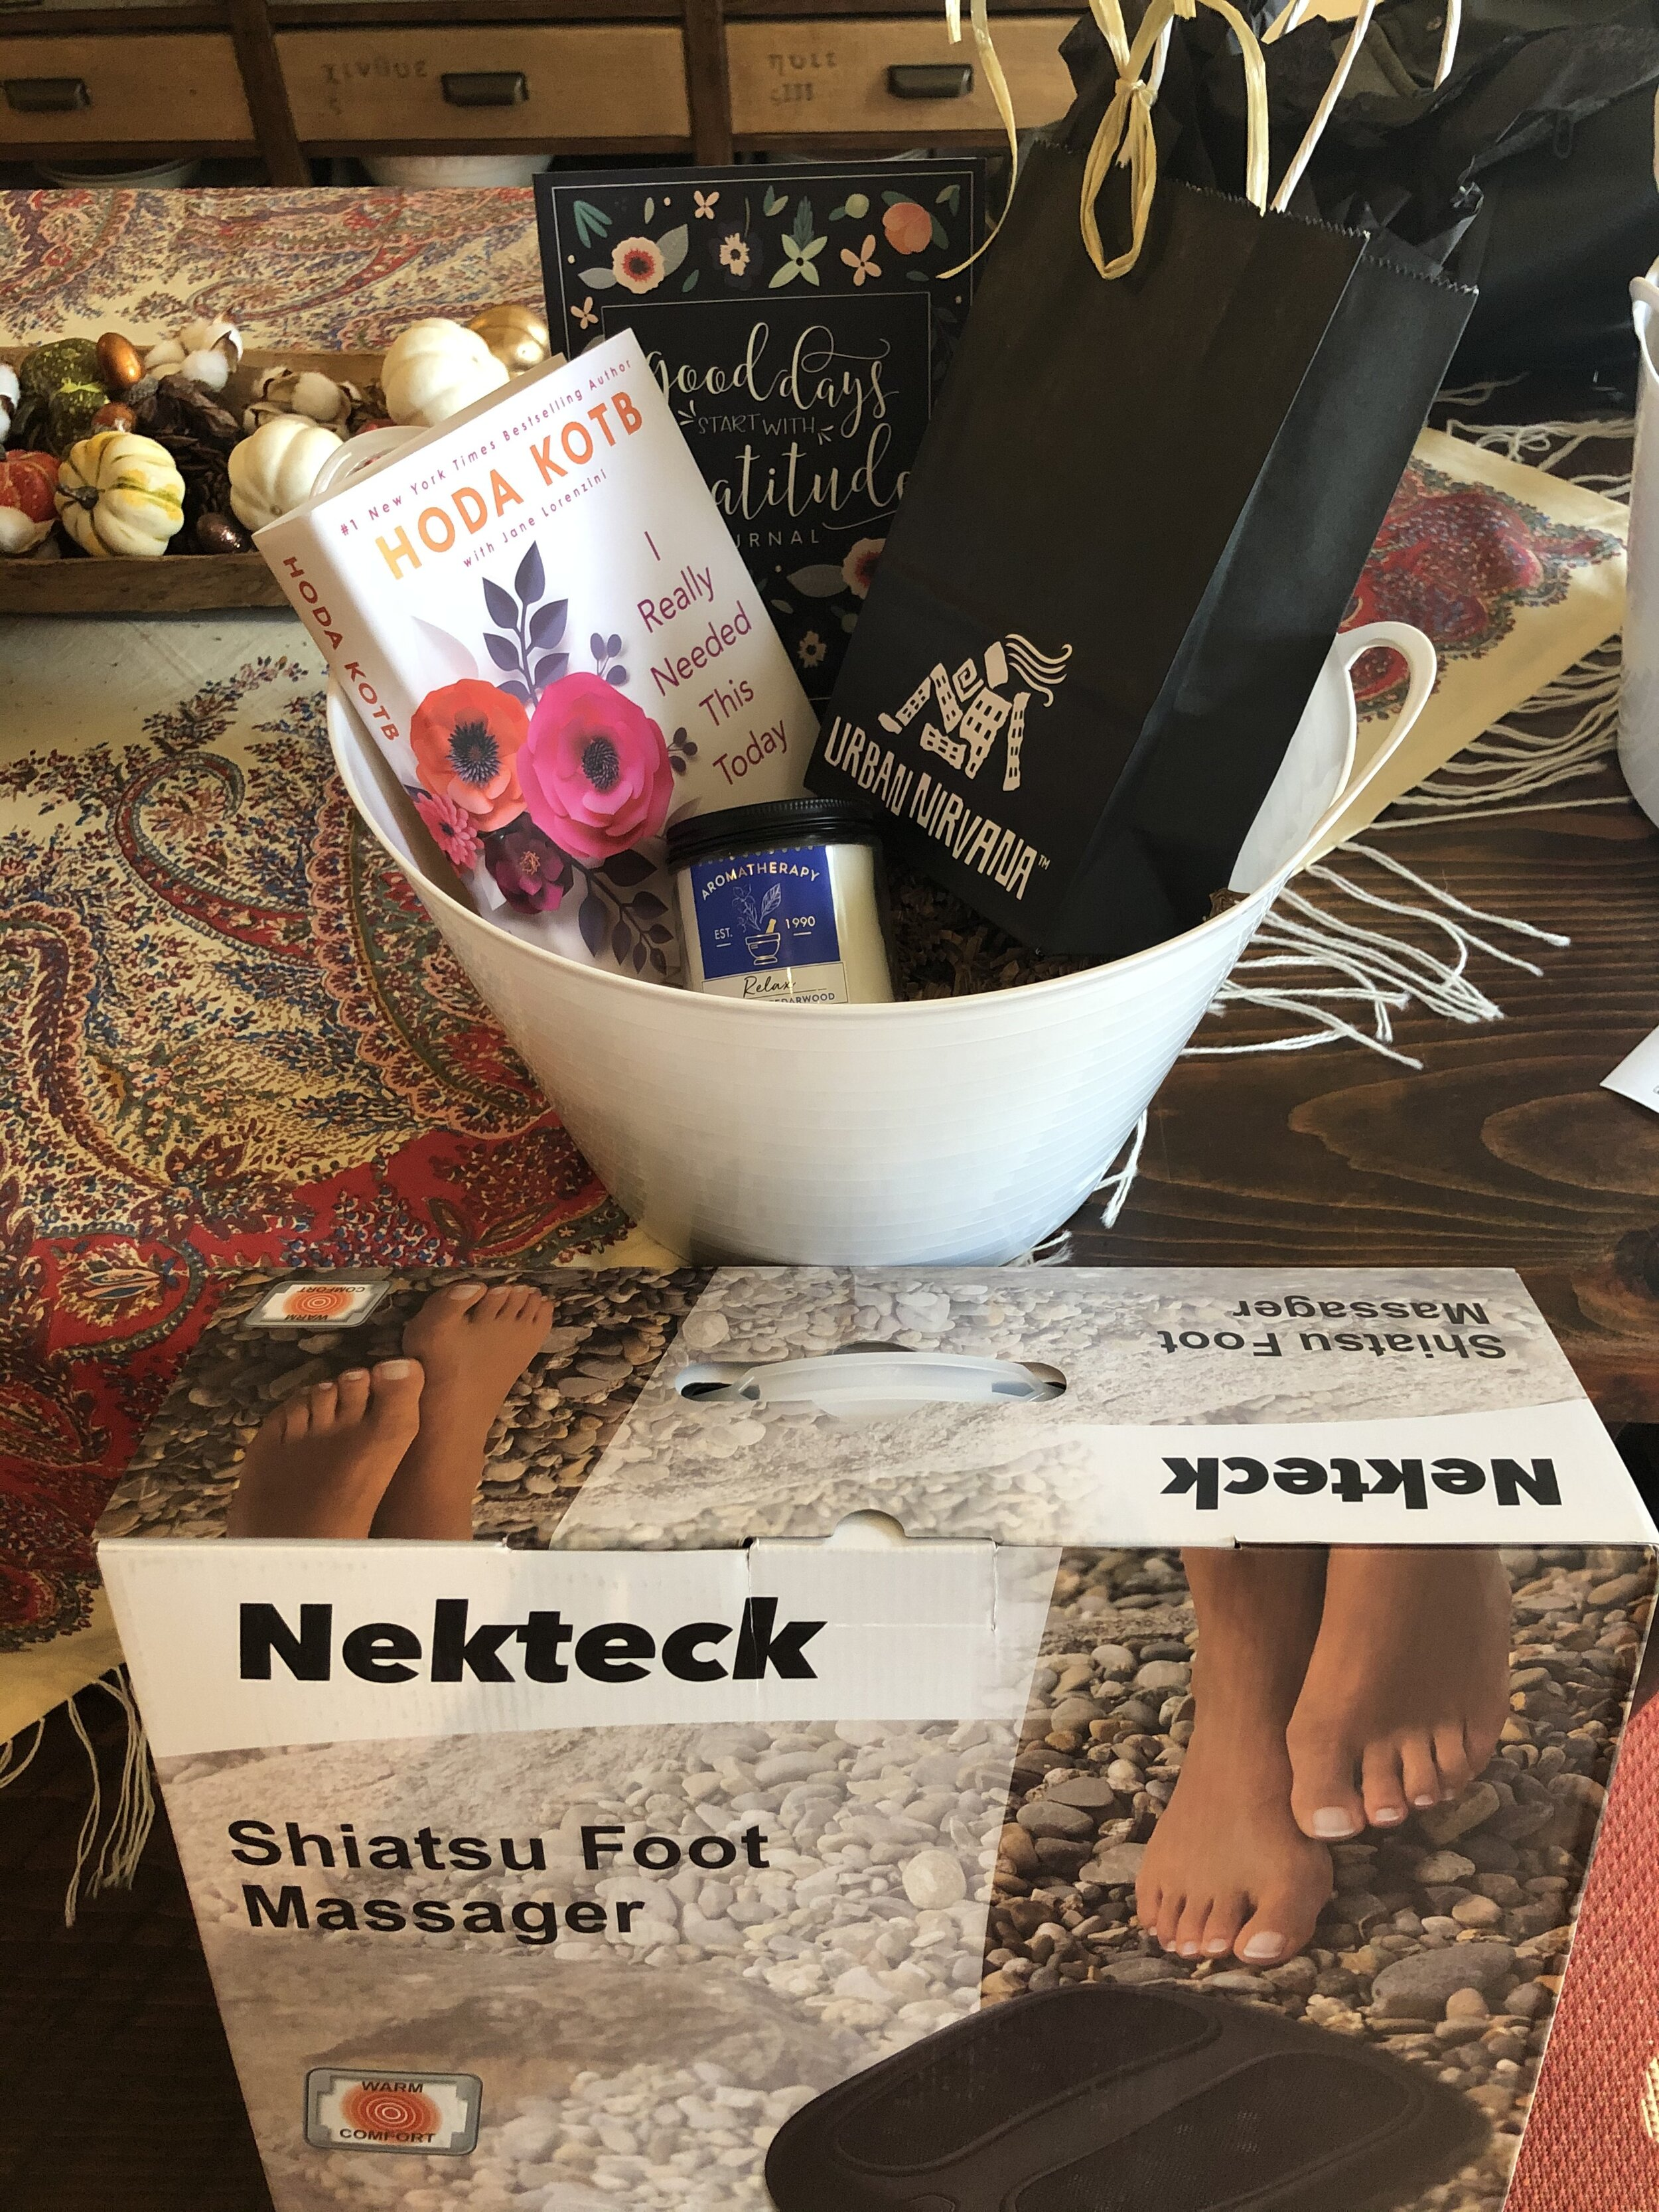 """""""I REALLY NEEDED THIS TODAY"""" SET   Remind yourself how important you are with this selfcare basket, including a $60 Express Facial from Urban Nirvana, Nekteck Shiatsu Foot Massager, Hoda Kotb's book  I Really Needed this Today , a gratitude journal and a lavender candle.  DONOR: 3rd Grade Classes VALUE: $147"""